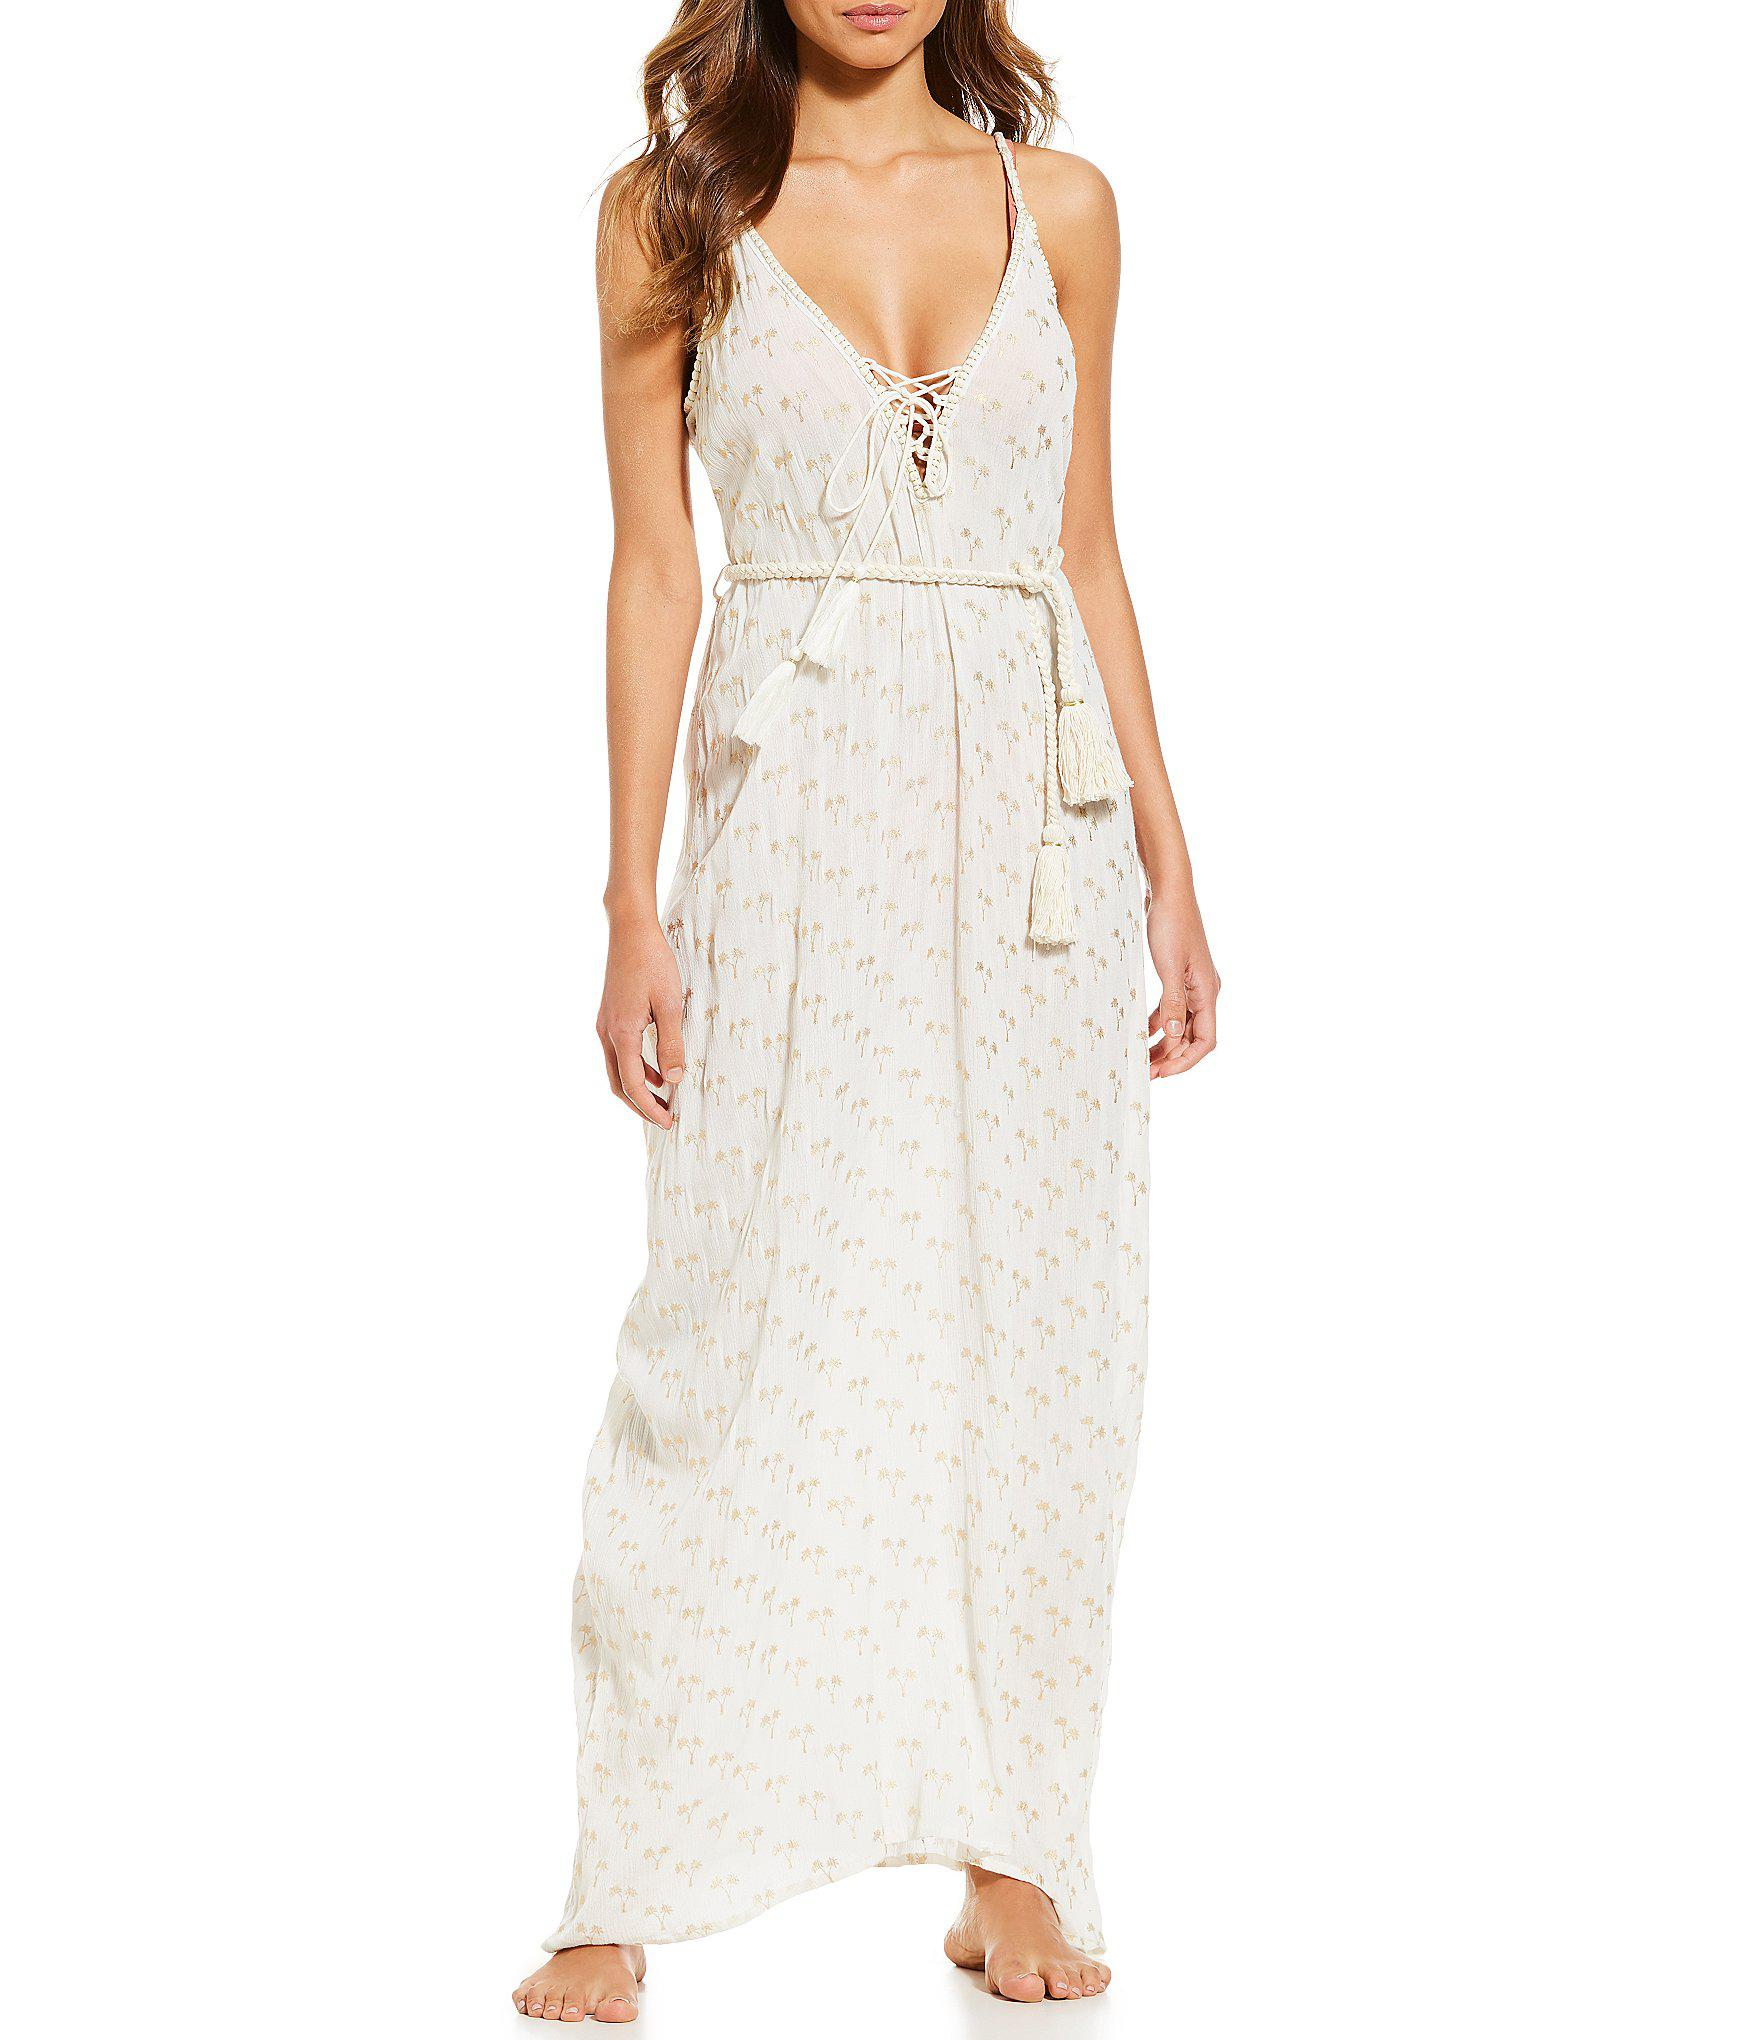 ca91c60e430 Lyst - Gianni Bini Embroidered Maxi Dress Cover-up in White